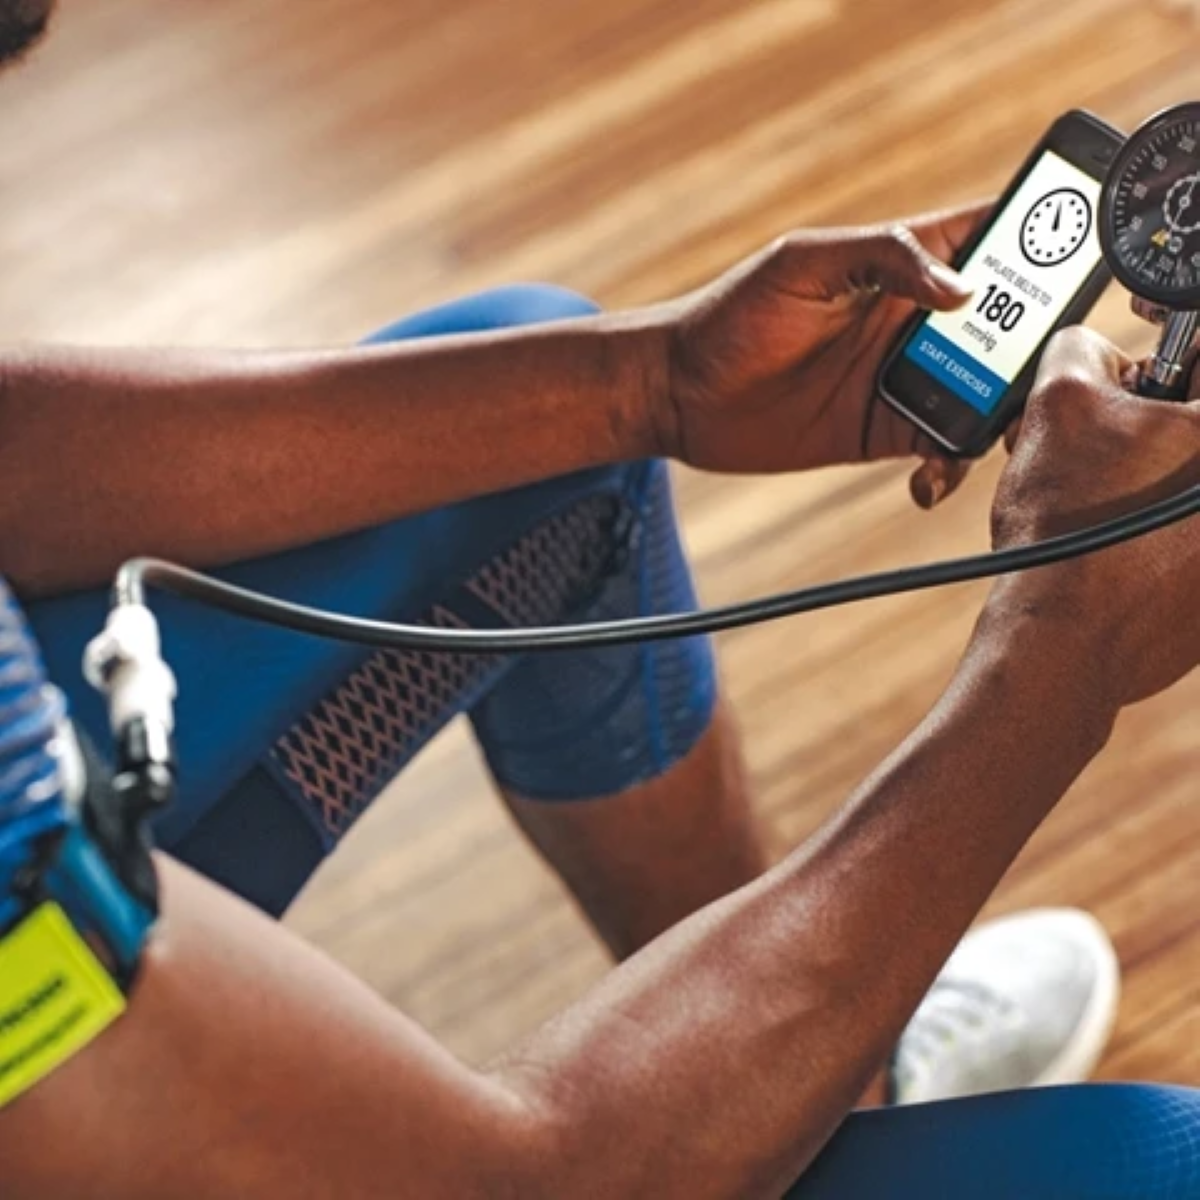 BFR (Blood Flow Restriction) TRAINING